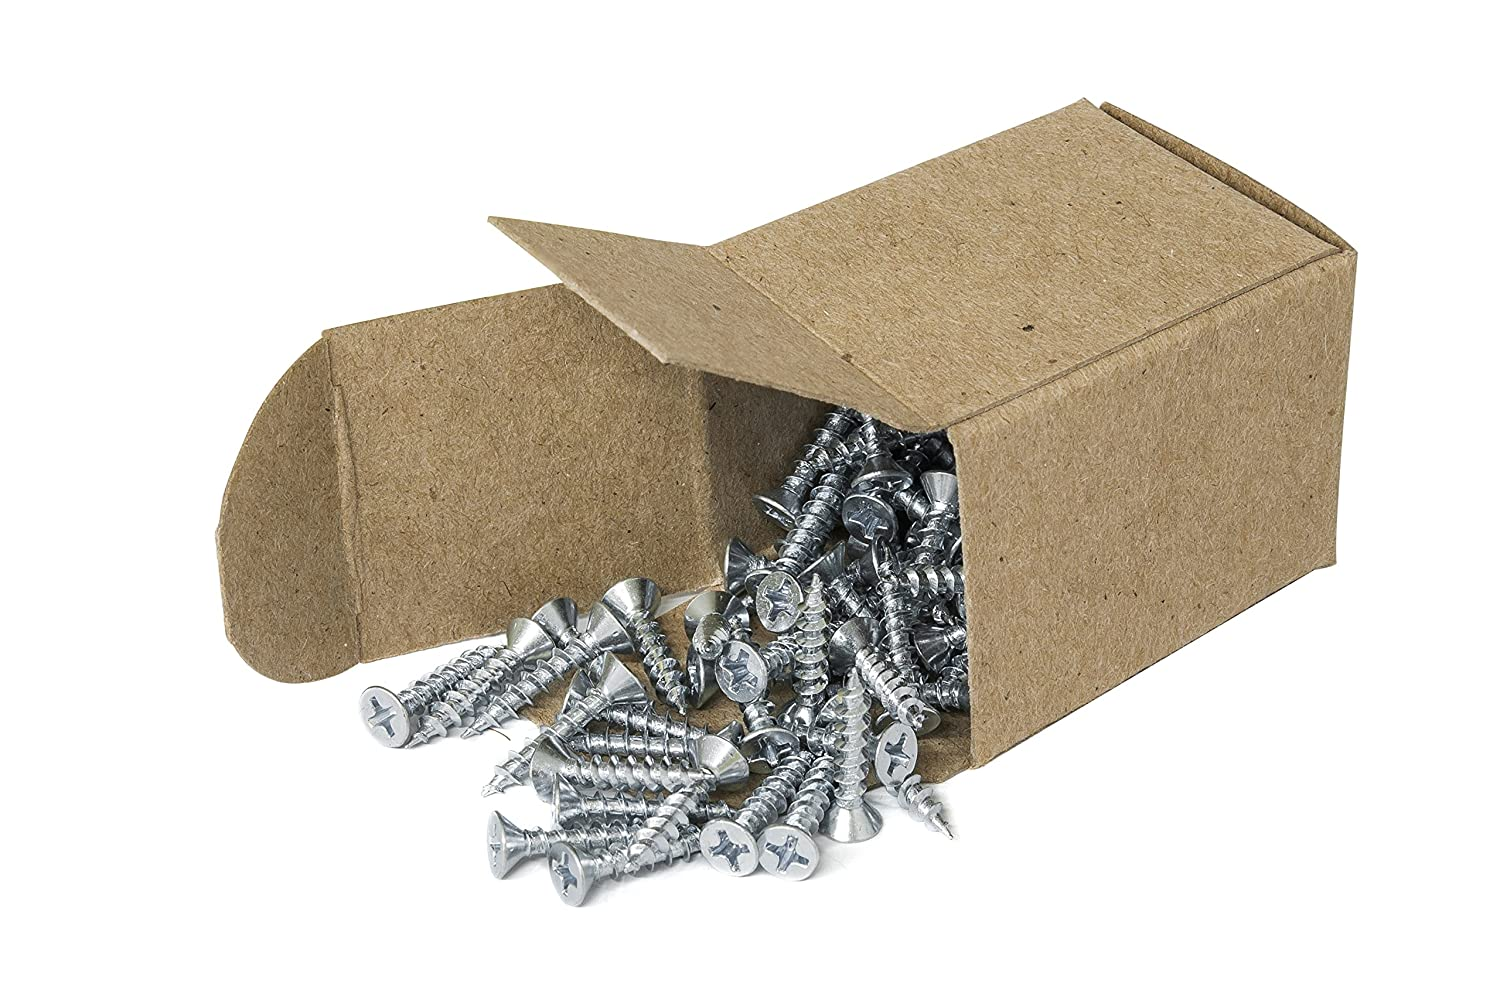 #6 x 1//2 Phillips Flat Head Countersink Screw or Fiberglass Box of 100 Plastic Zinc-Plated Steel for Attaches Sheet Metal to Wood